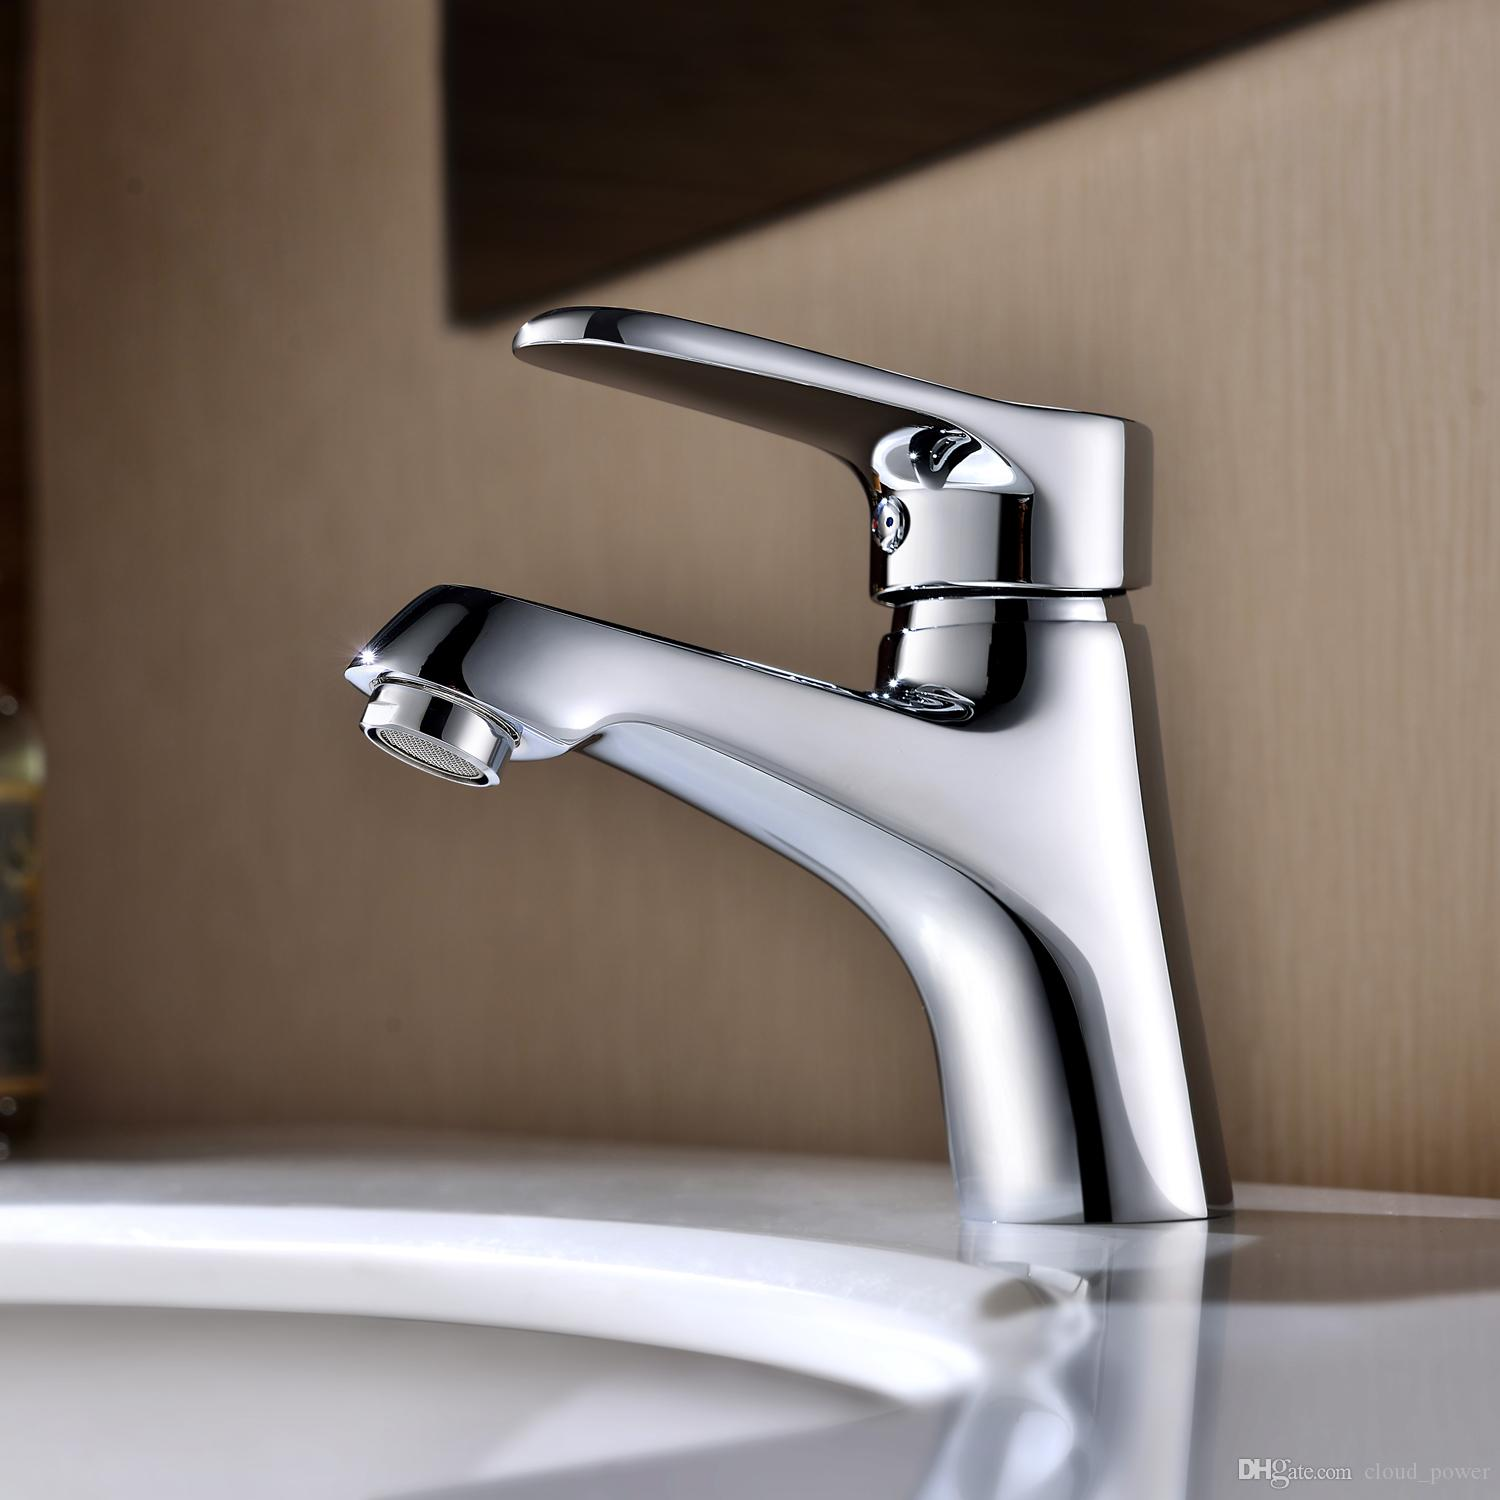 Bathroom Basin Faucets Polished Chrome Deck Mounted Ceramic Valve ...